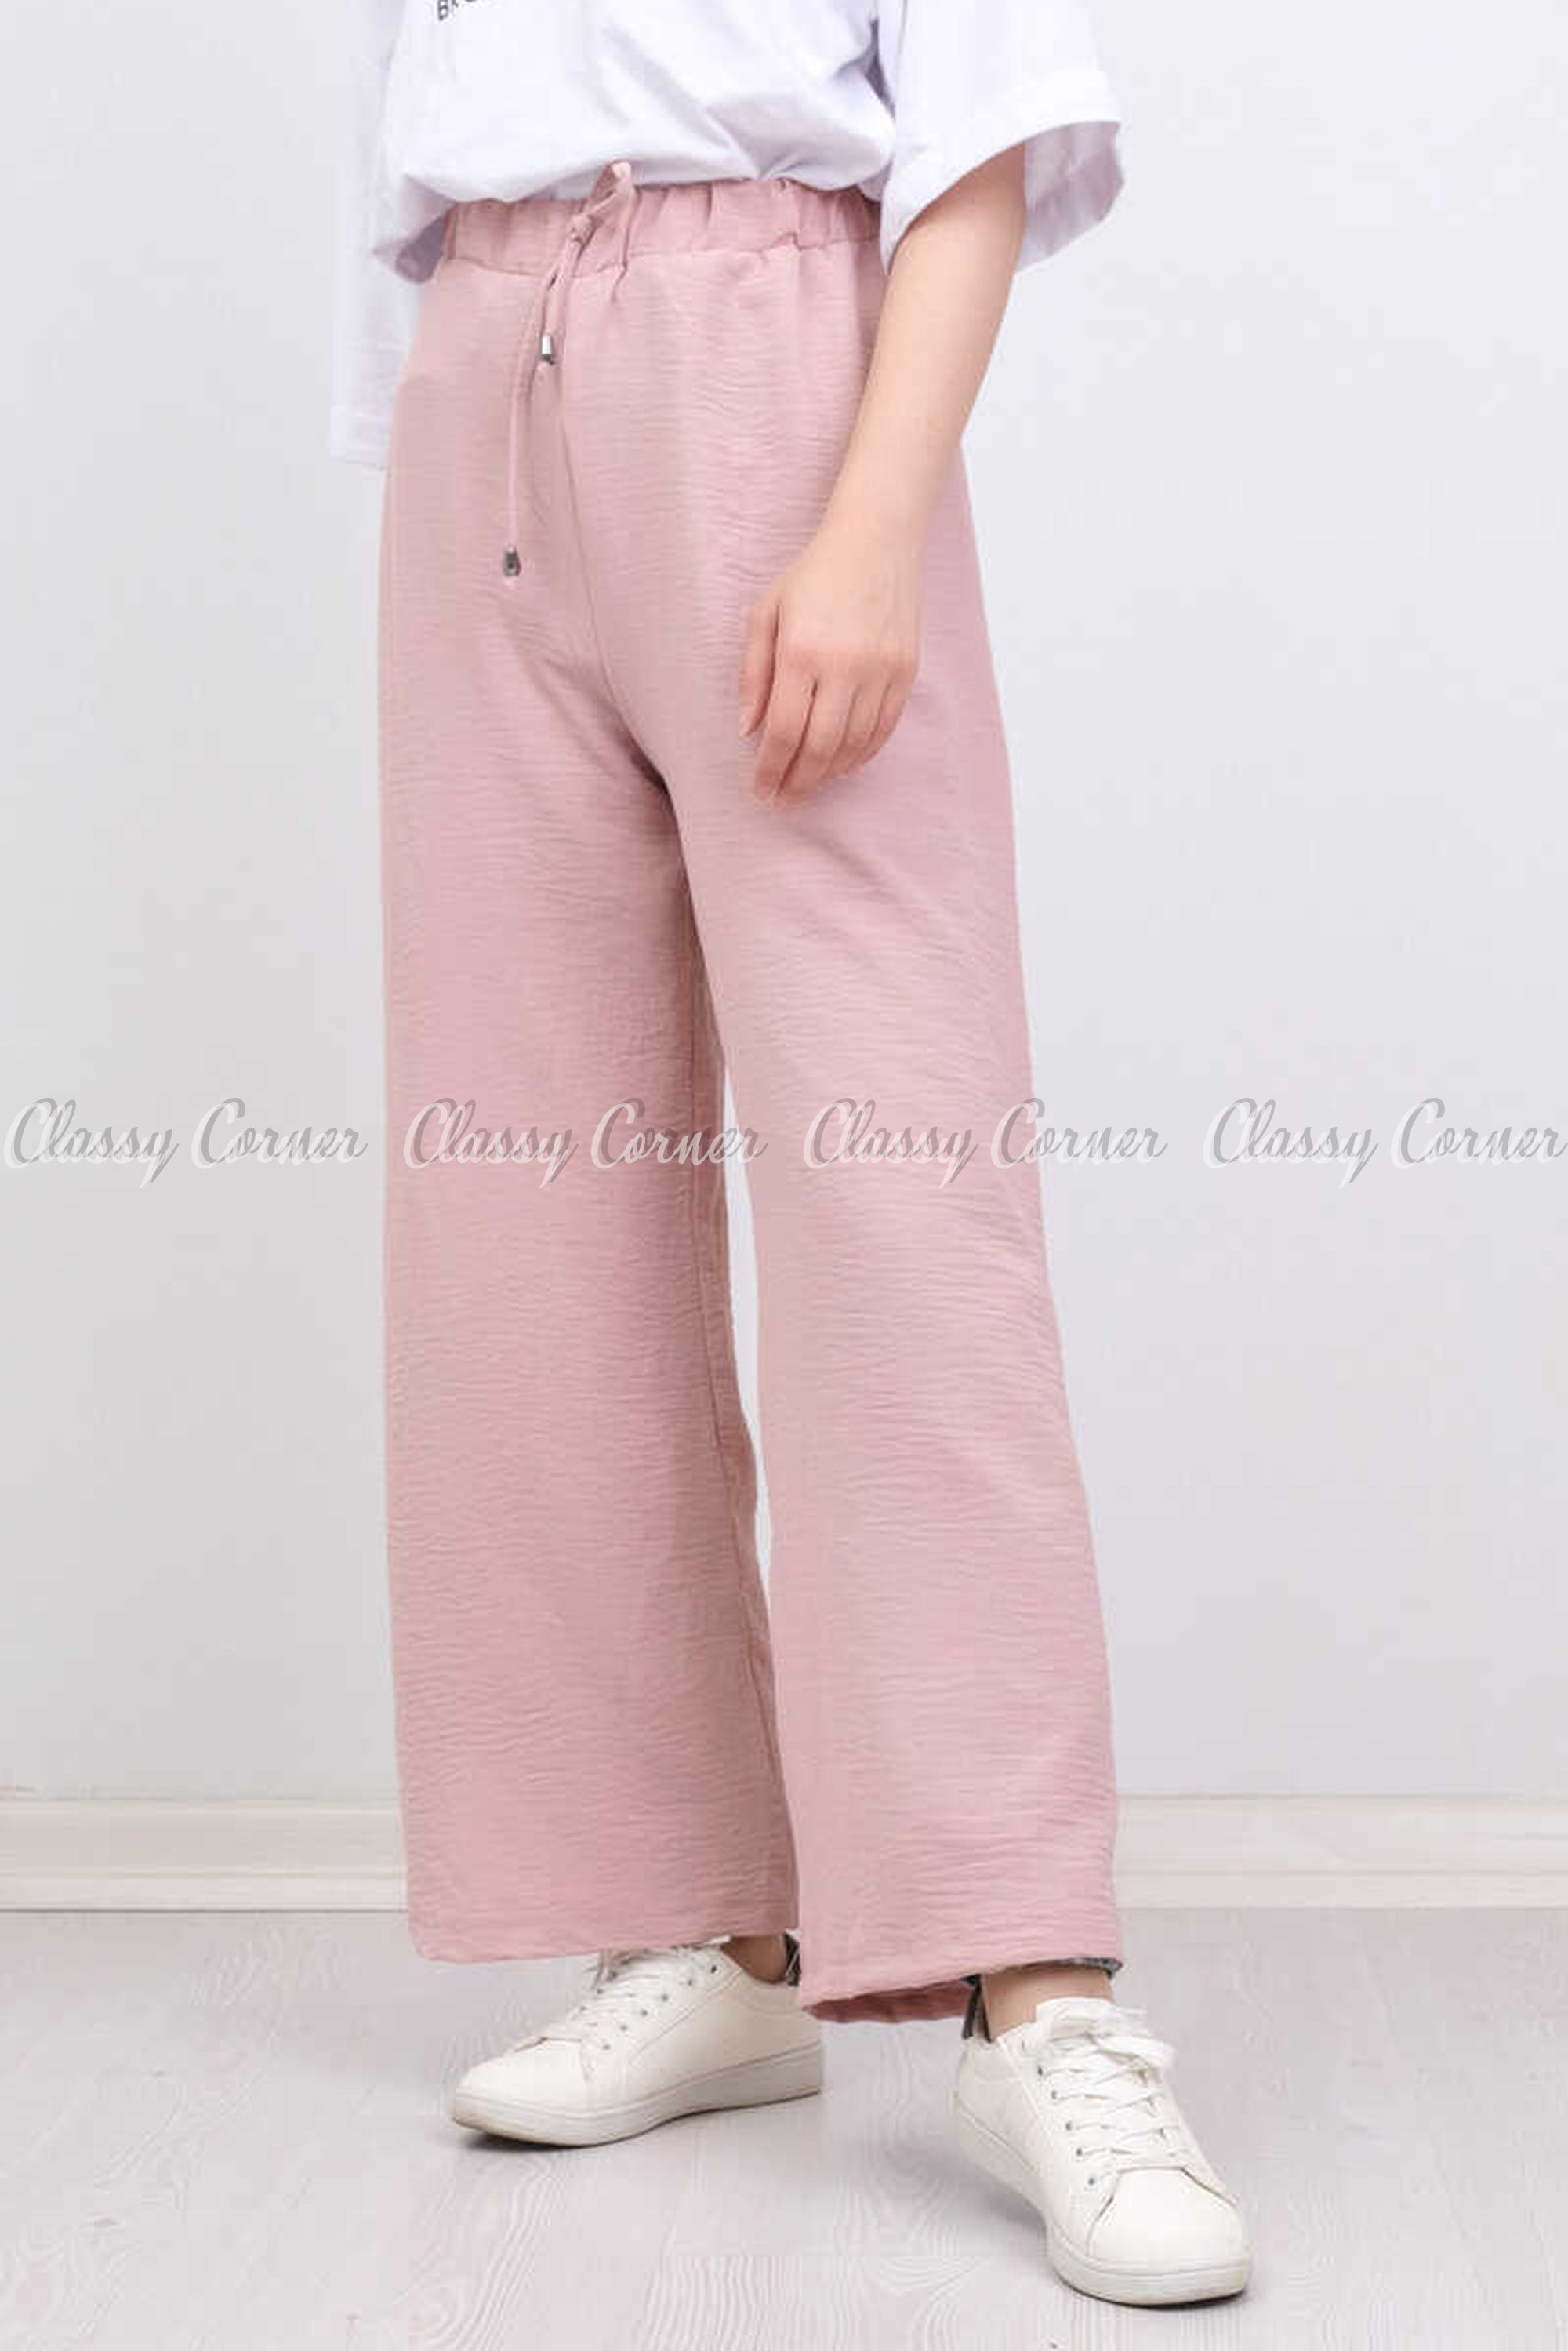 Elastic Waist Powder Pink Modest Comfy Pants